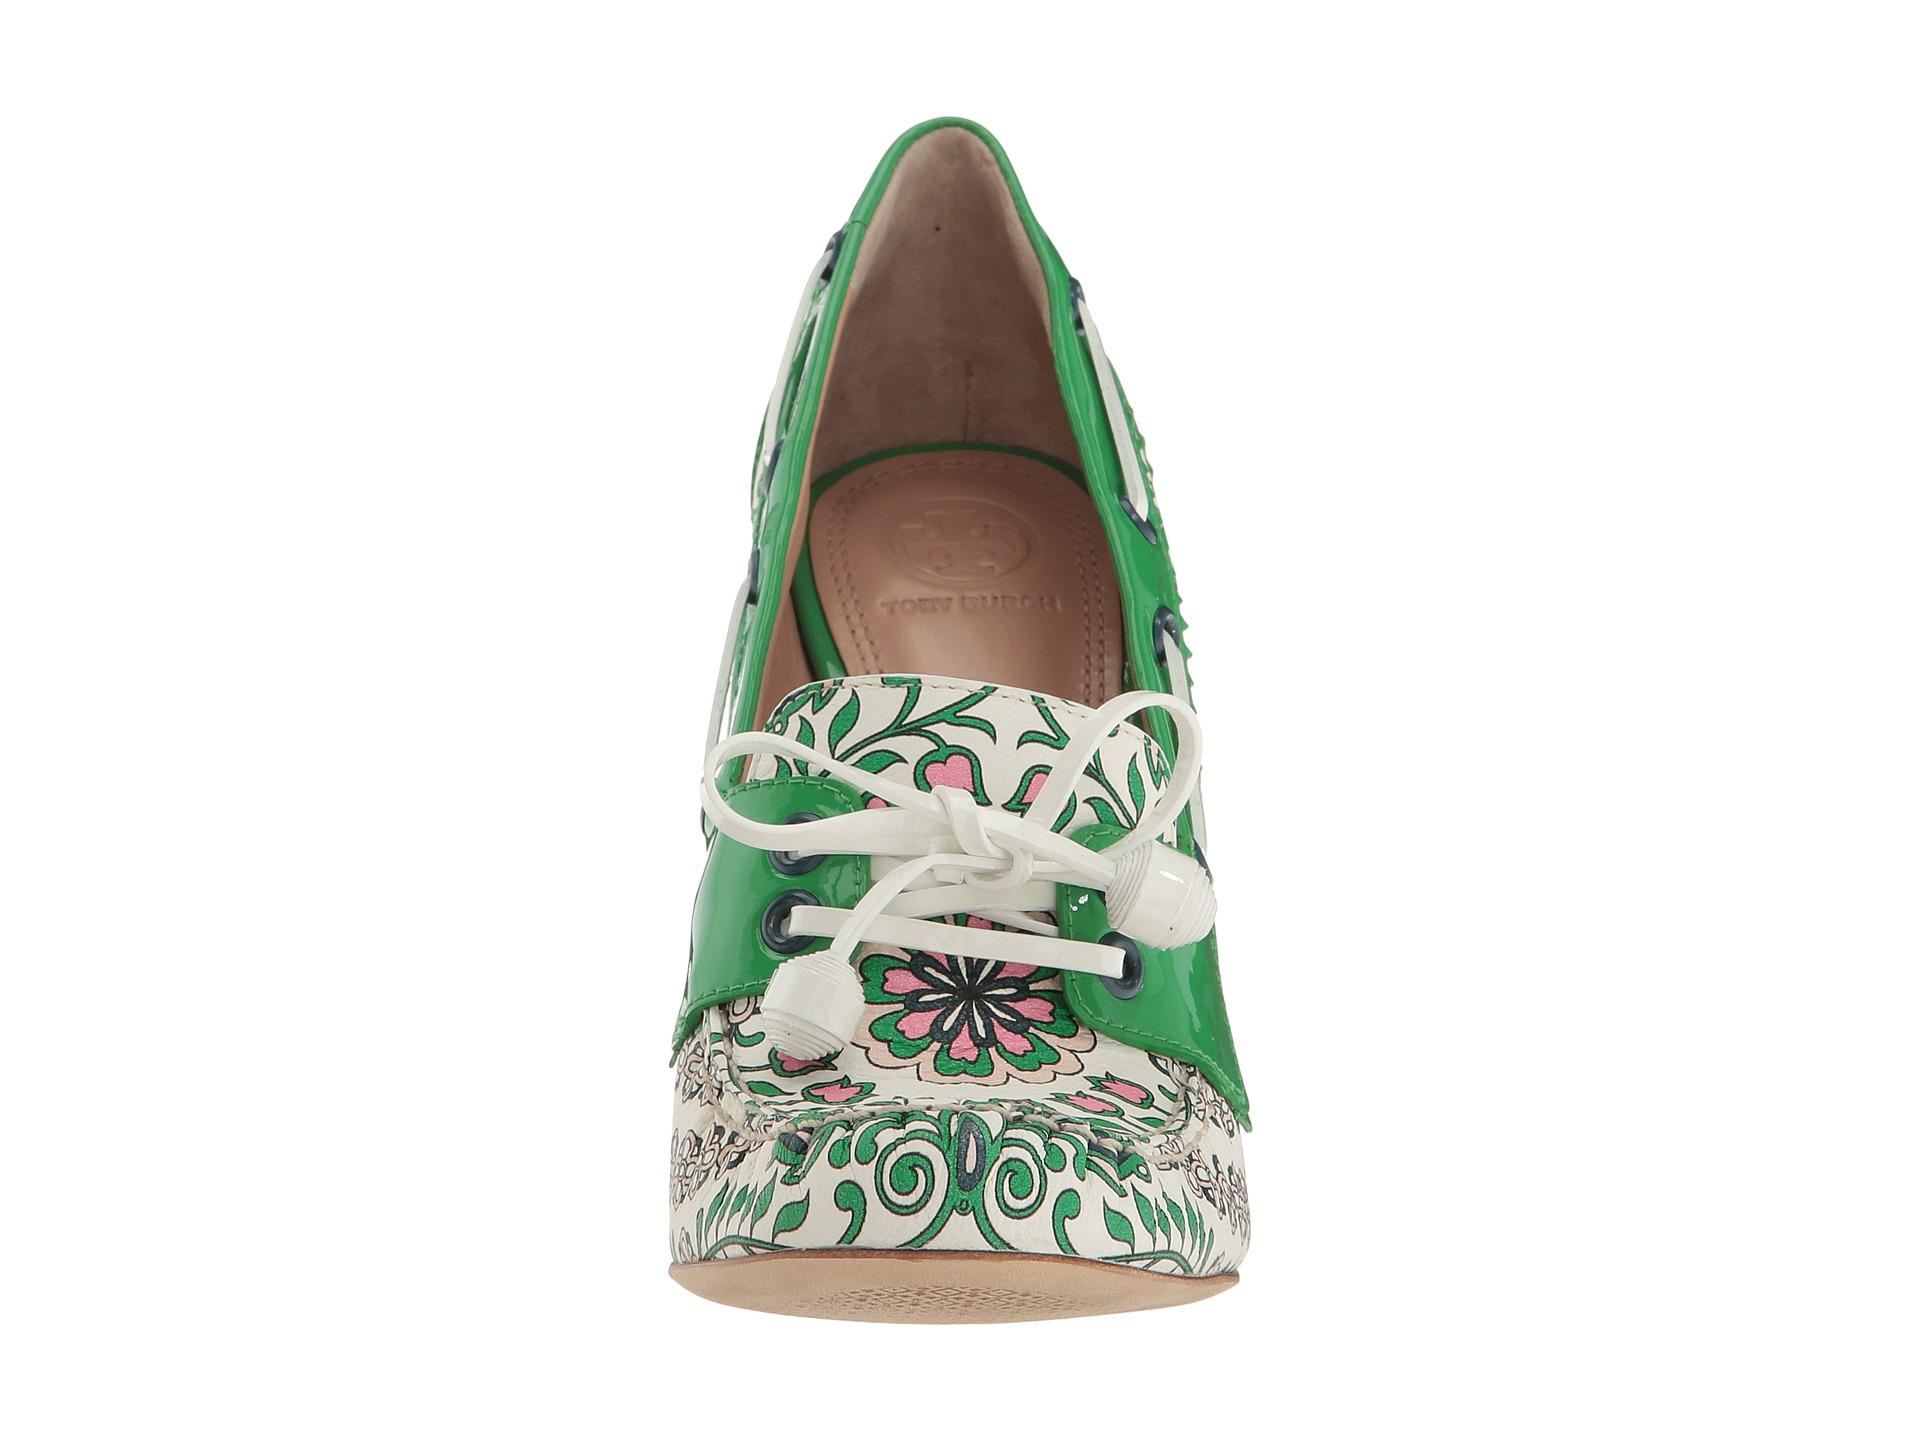 ed4ae9605 Lyst - Tory Burch Fisher 110mm Pump in Green